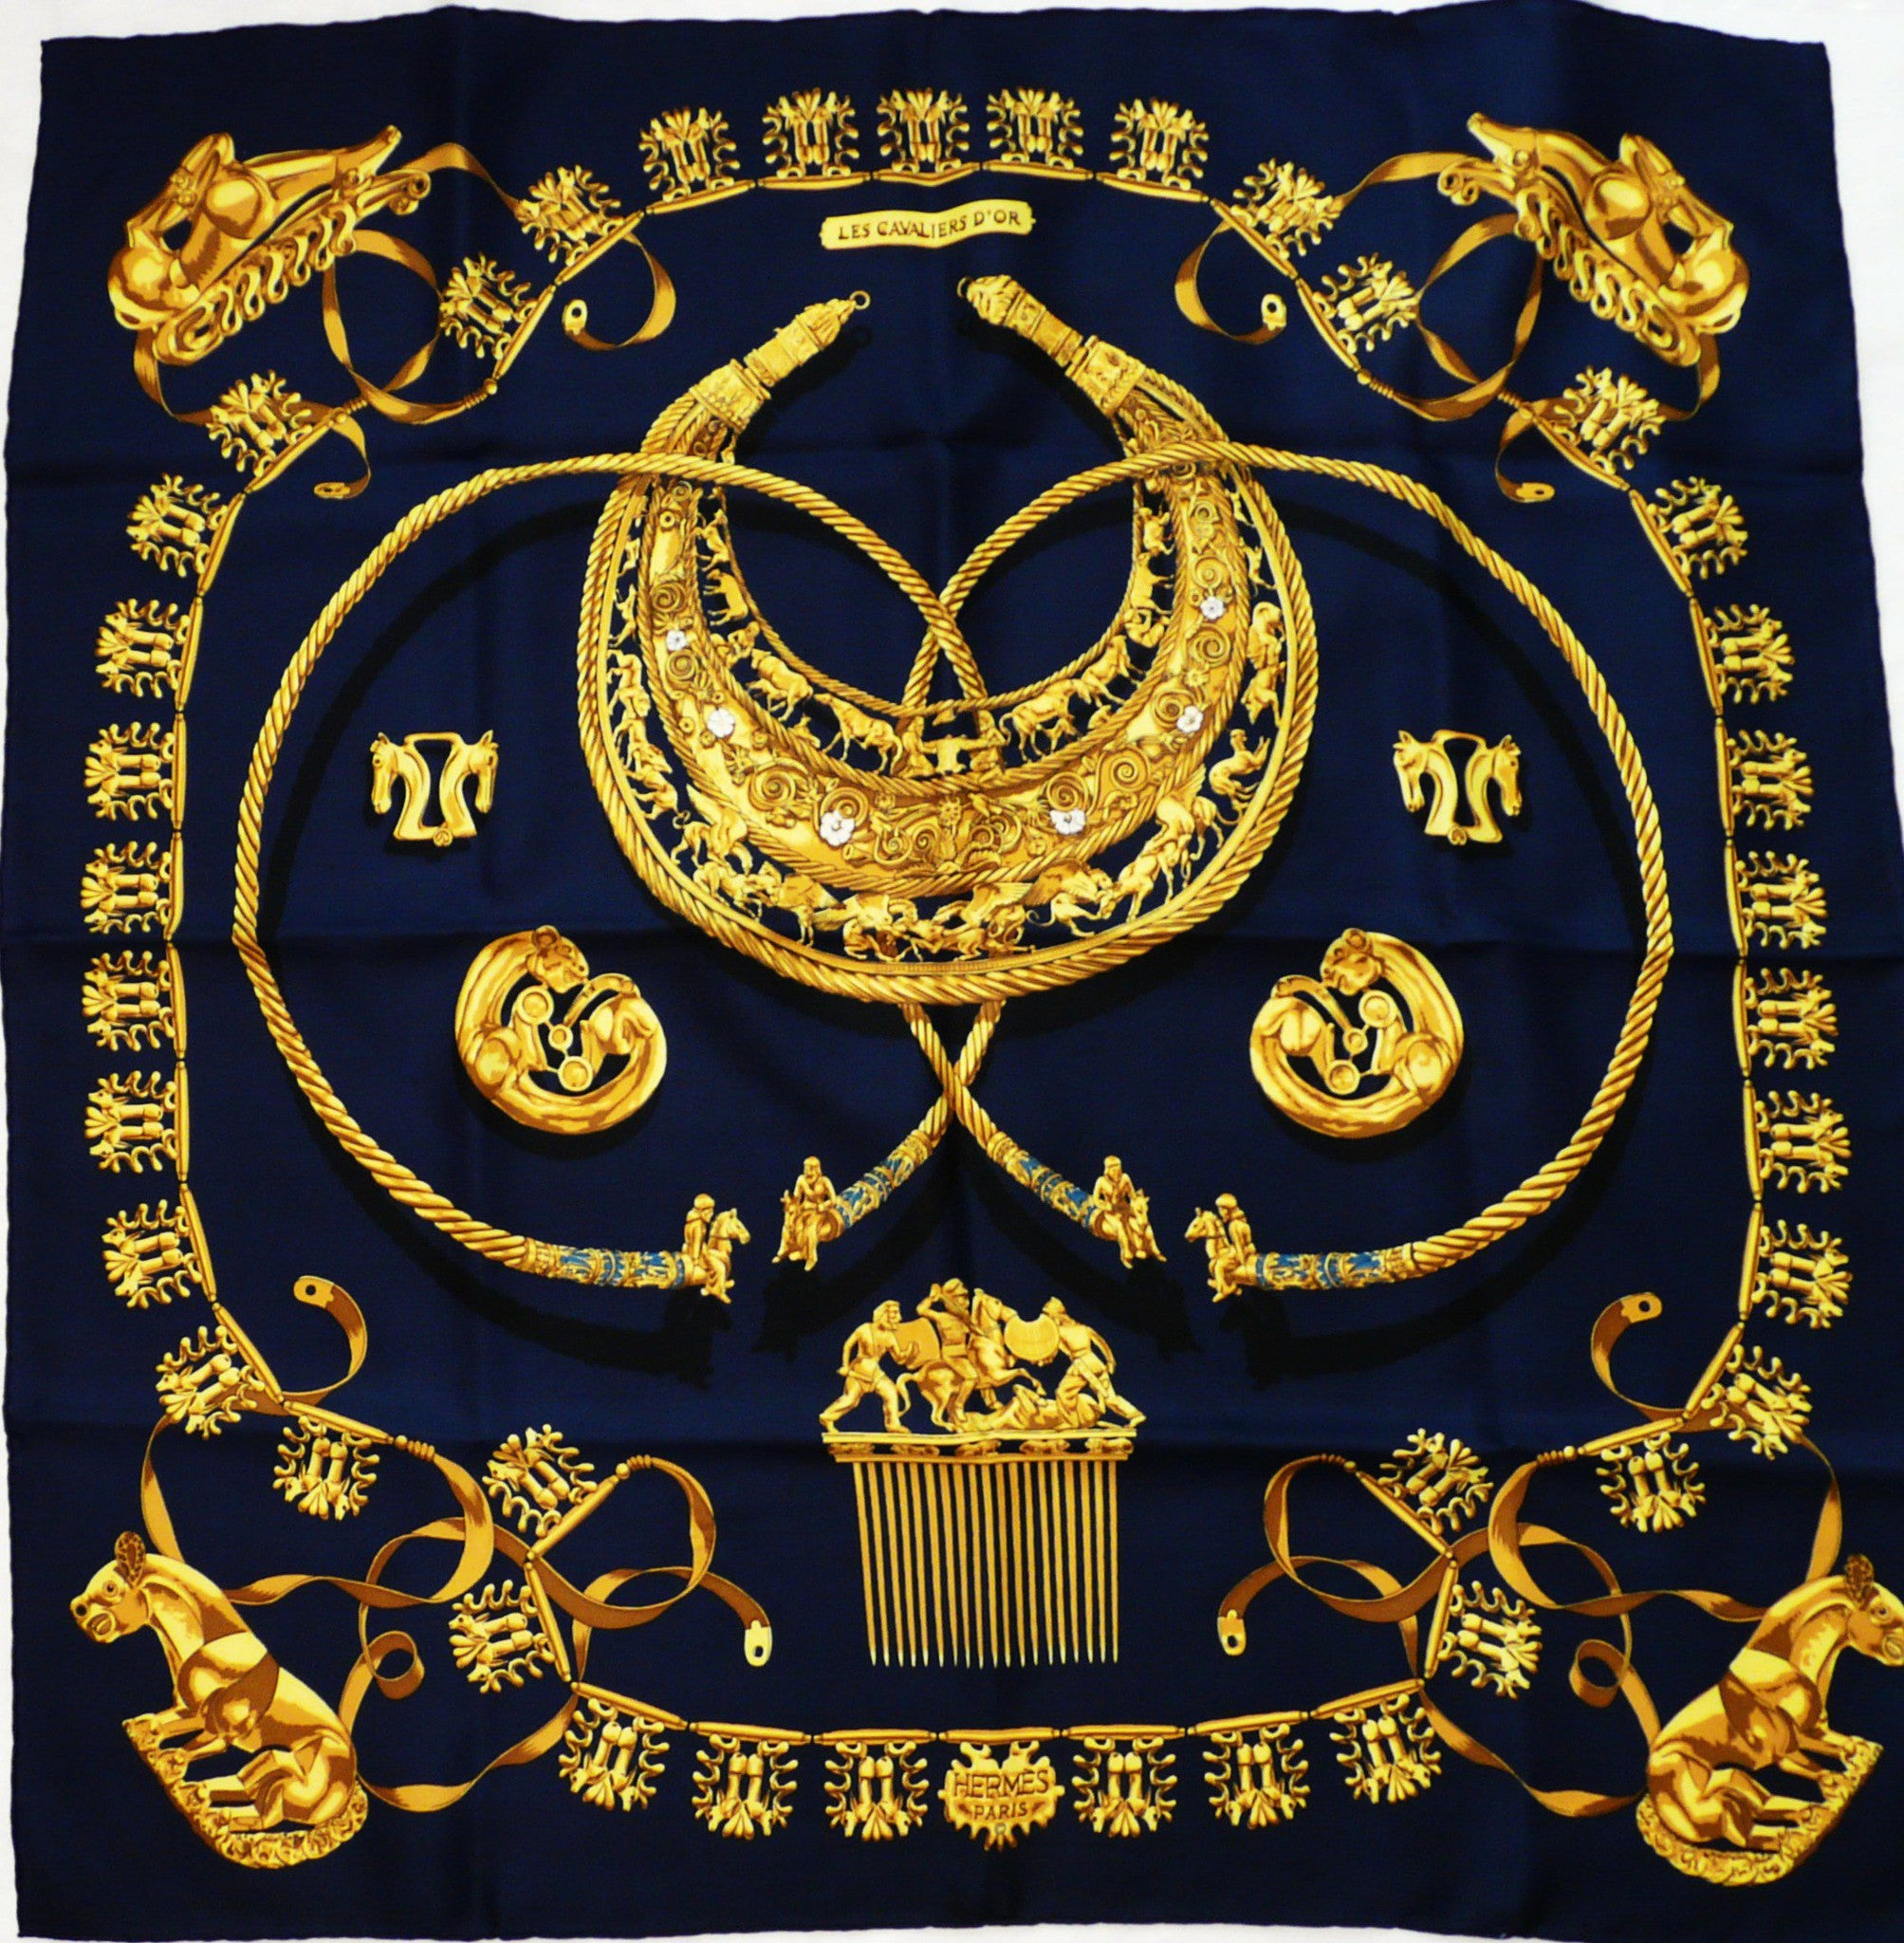 Authentic Vintage Hermes Silk Scarf Les Cavaliers D'Or by Vladimir Rybaltchenko Navy